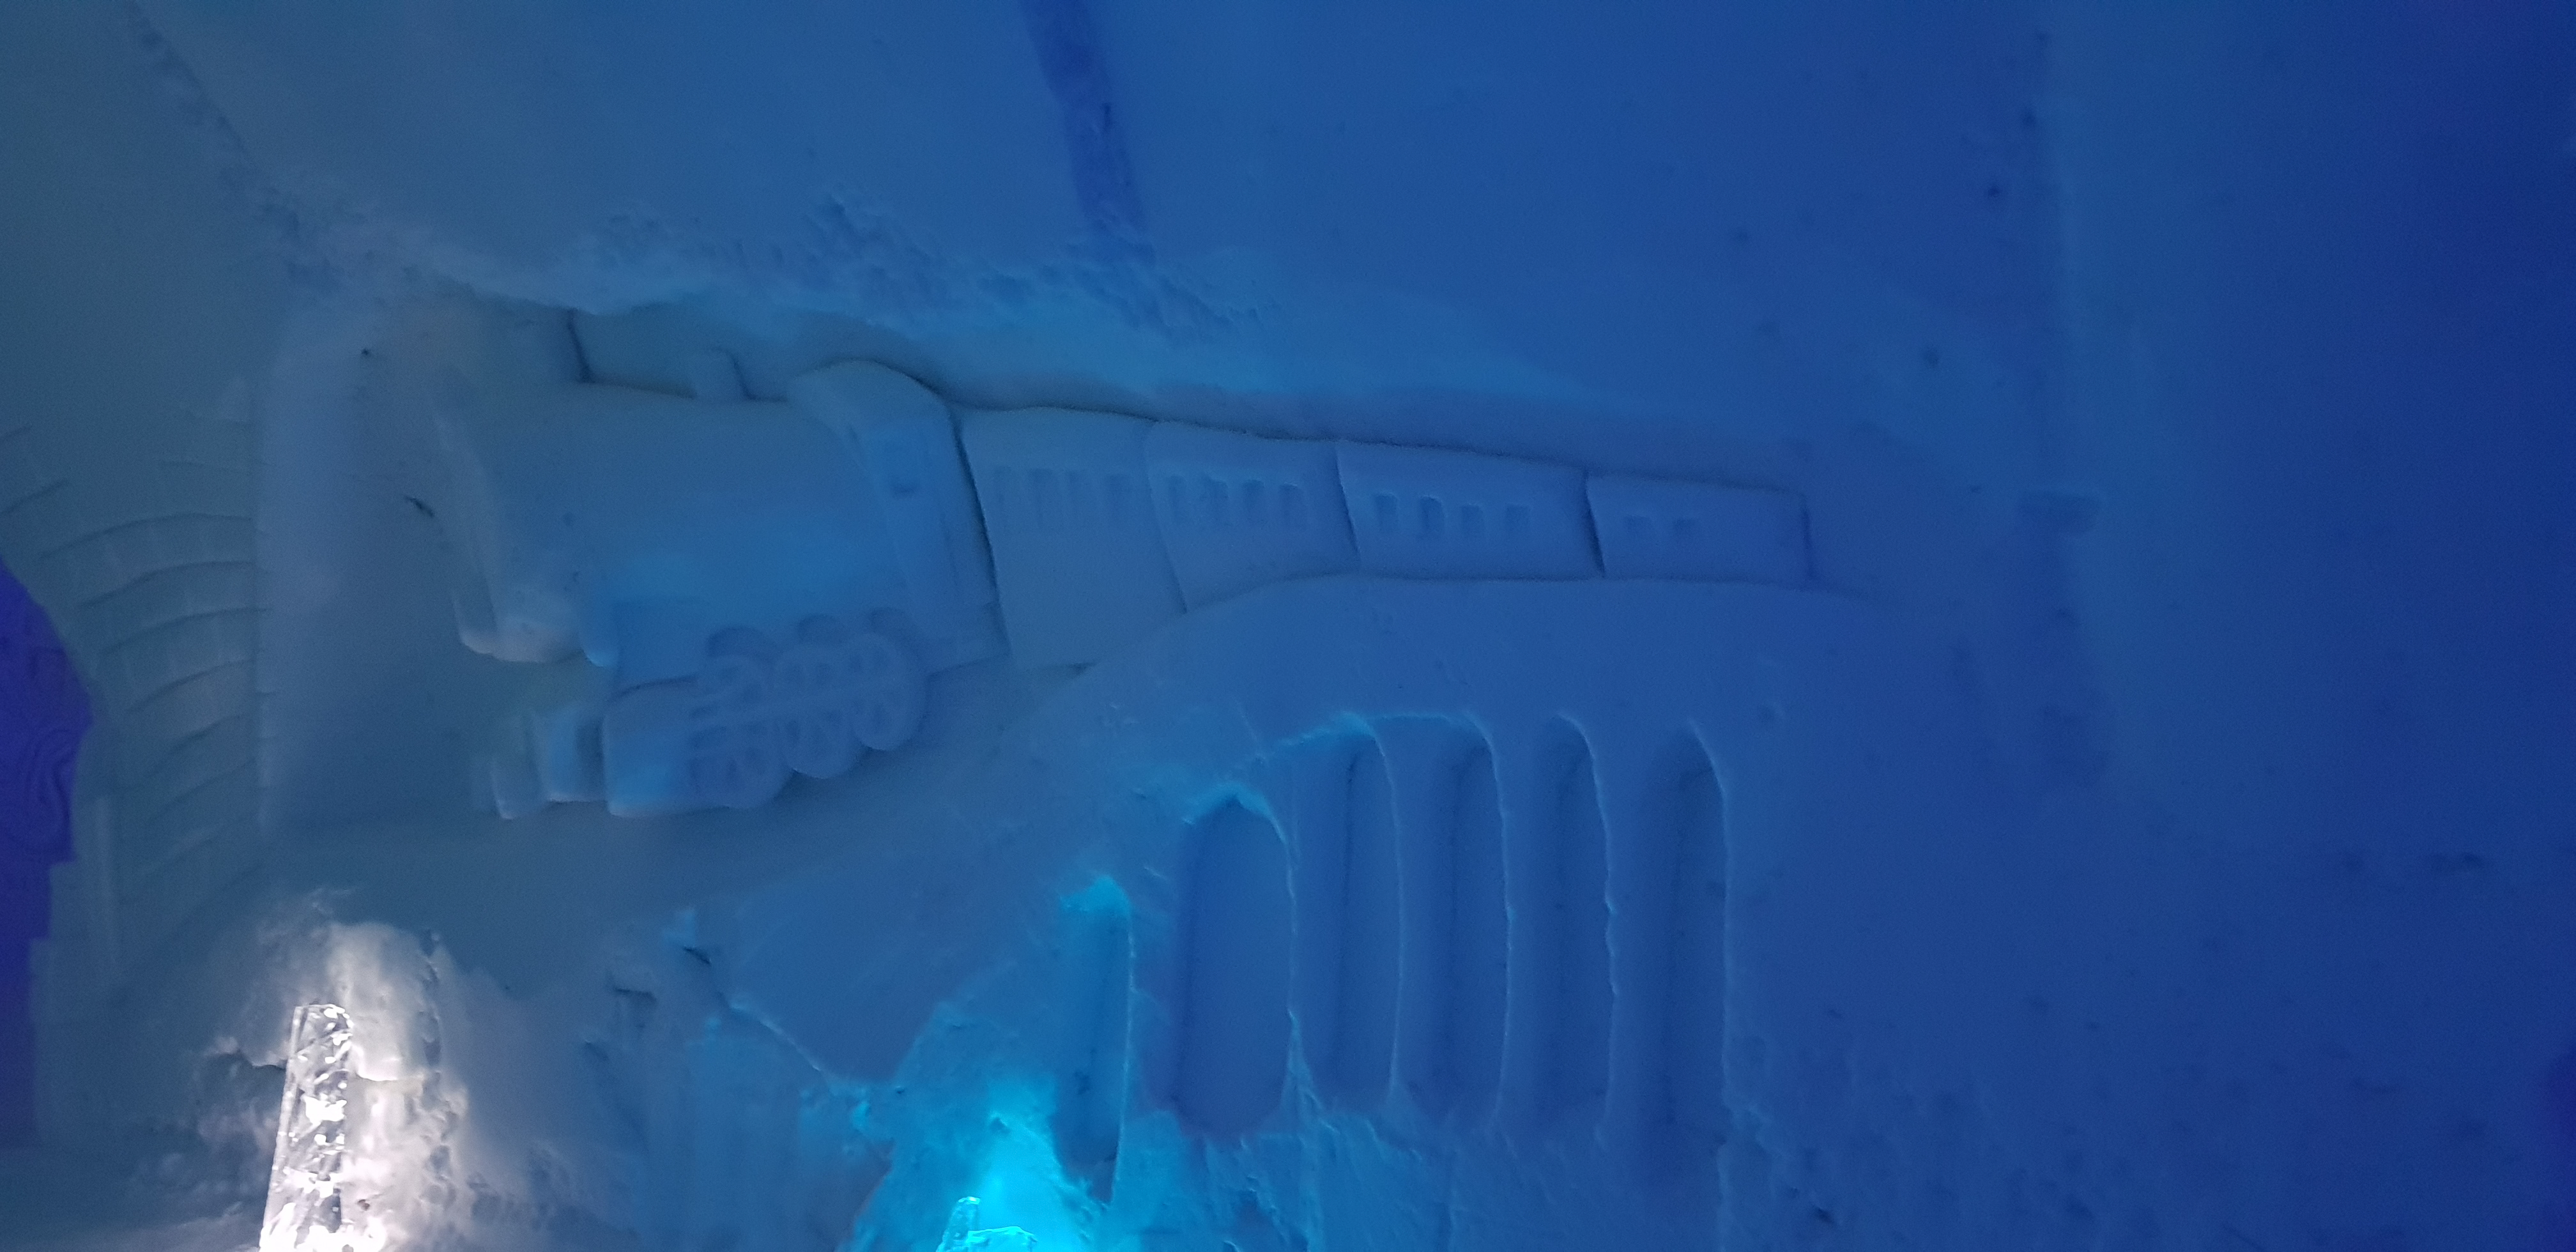 The Hogwarts Express is one of many sculptures carved into the walls of the Ice Hotel.